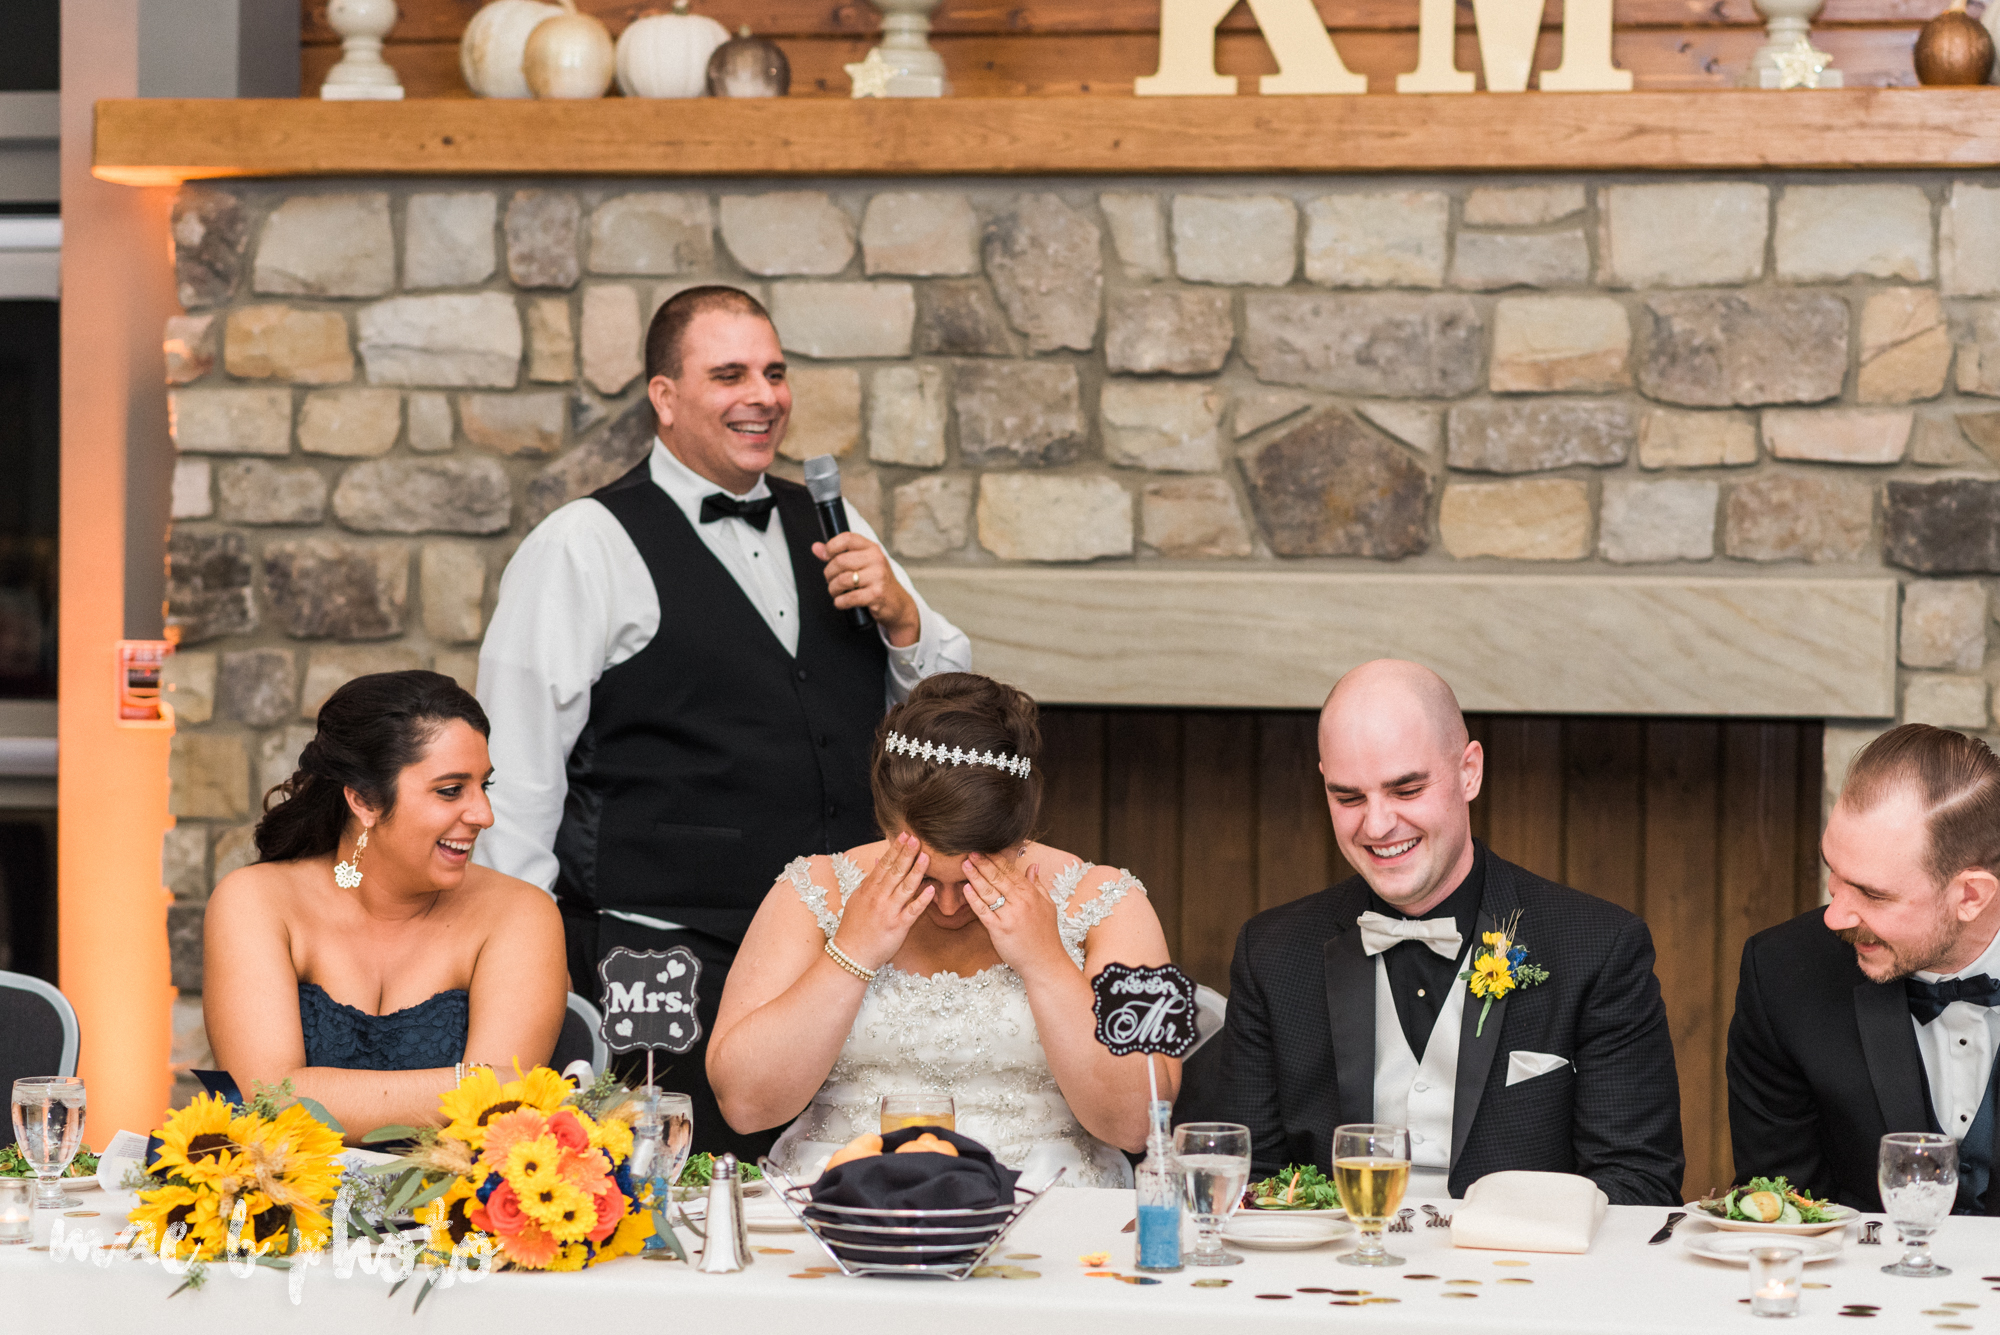 kaylynn & matt's fall zoo wedding at the cleveland metroparks zoo in cleveland ohio photographed by mae b photo-137.jpg